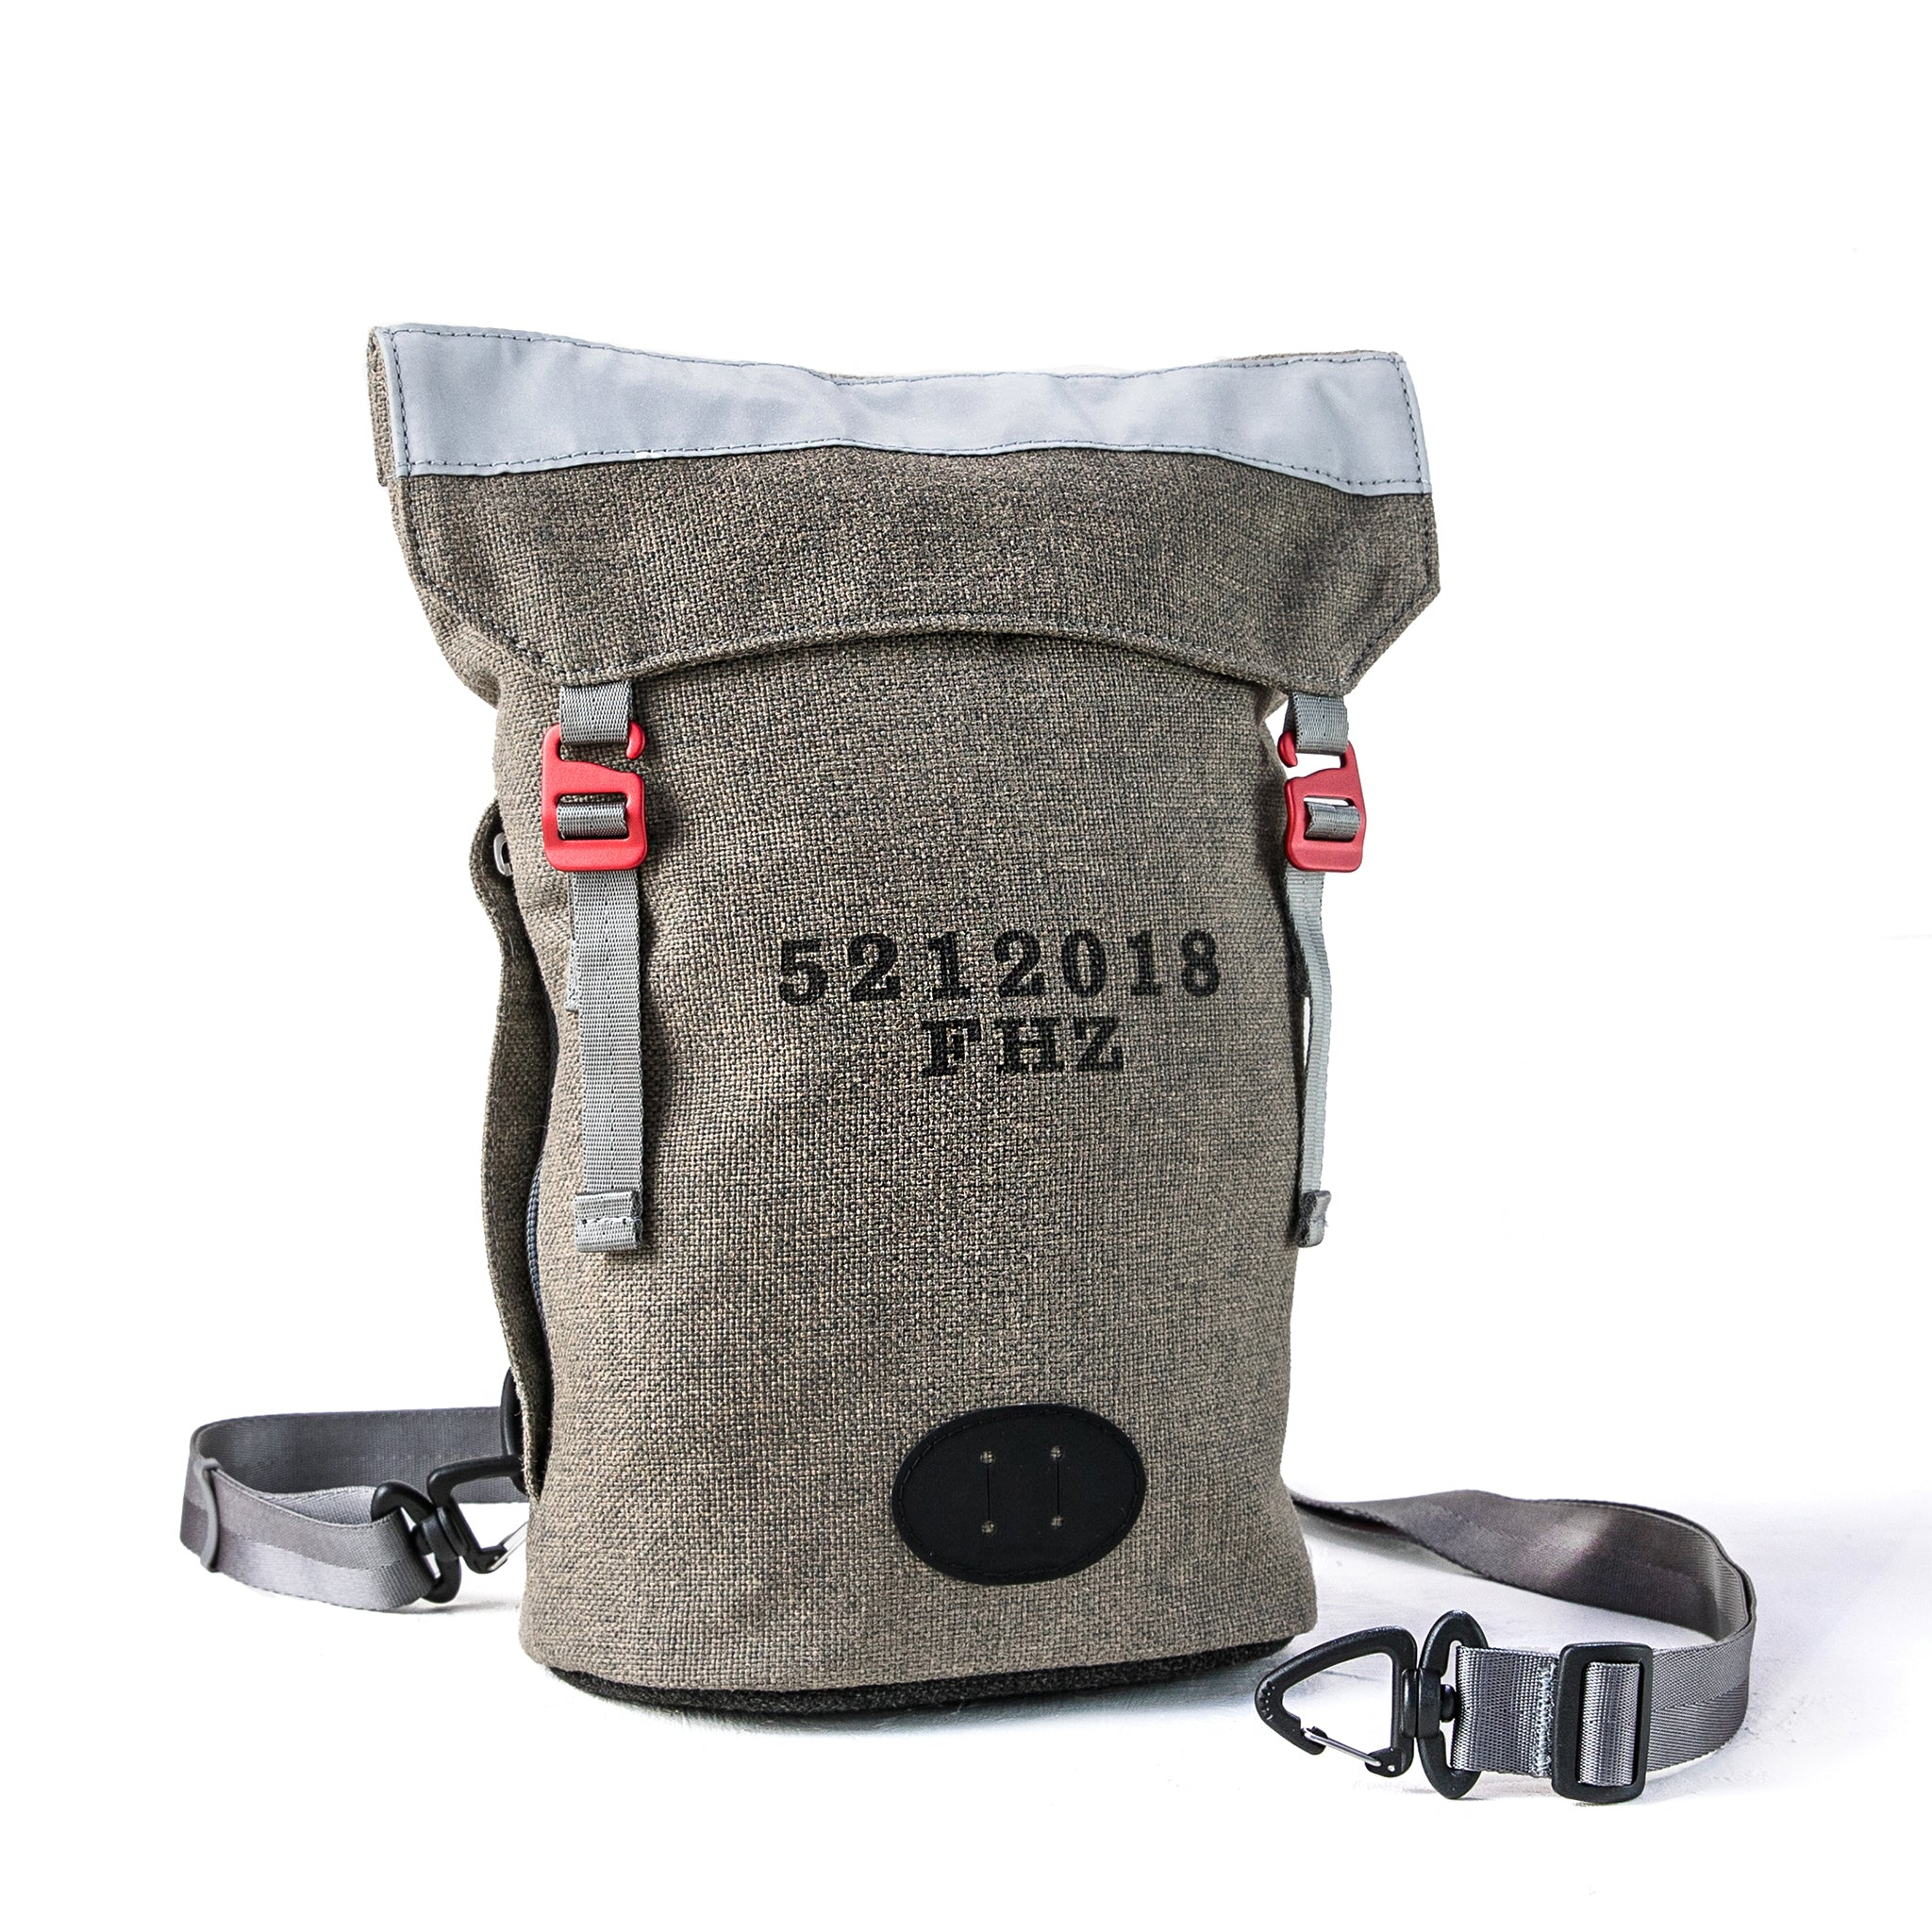 Front view of convertible Fierce Hazel backpack made with sustainable fabric. Functional, rugged and water-resistant it is military styled but beautiful